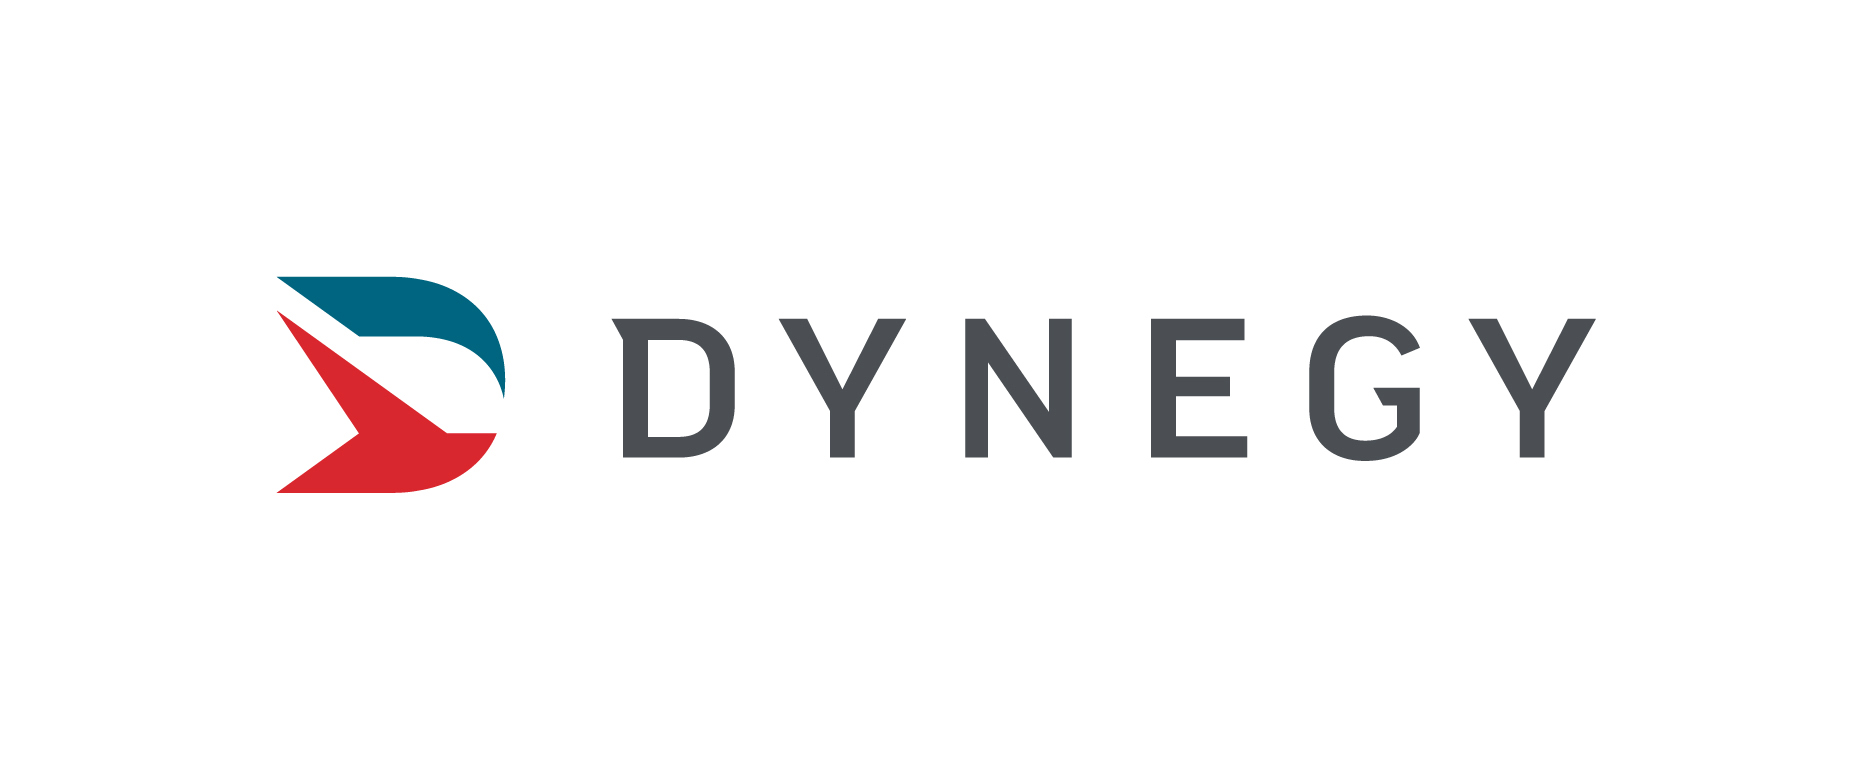 Dynegy reports nearly $300 million loss for second quarter